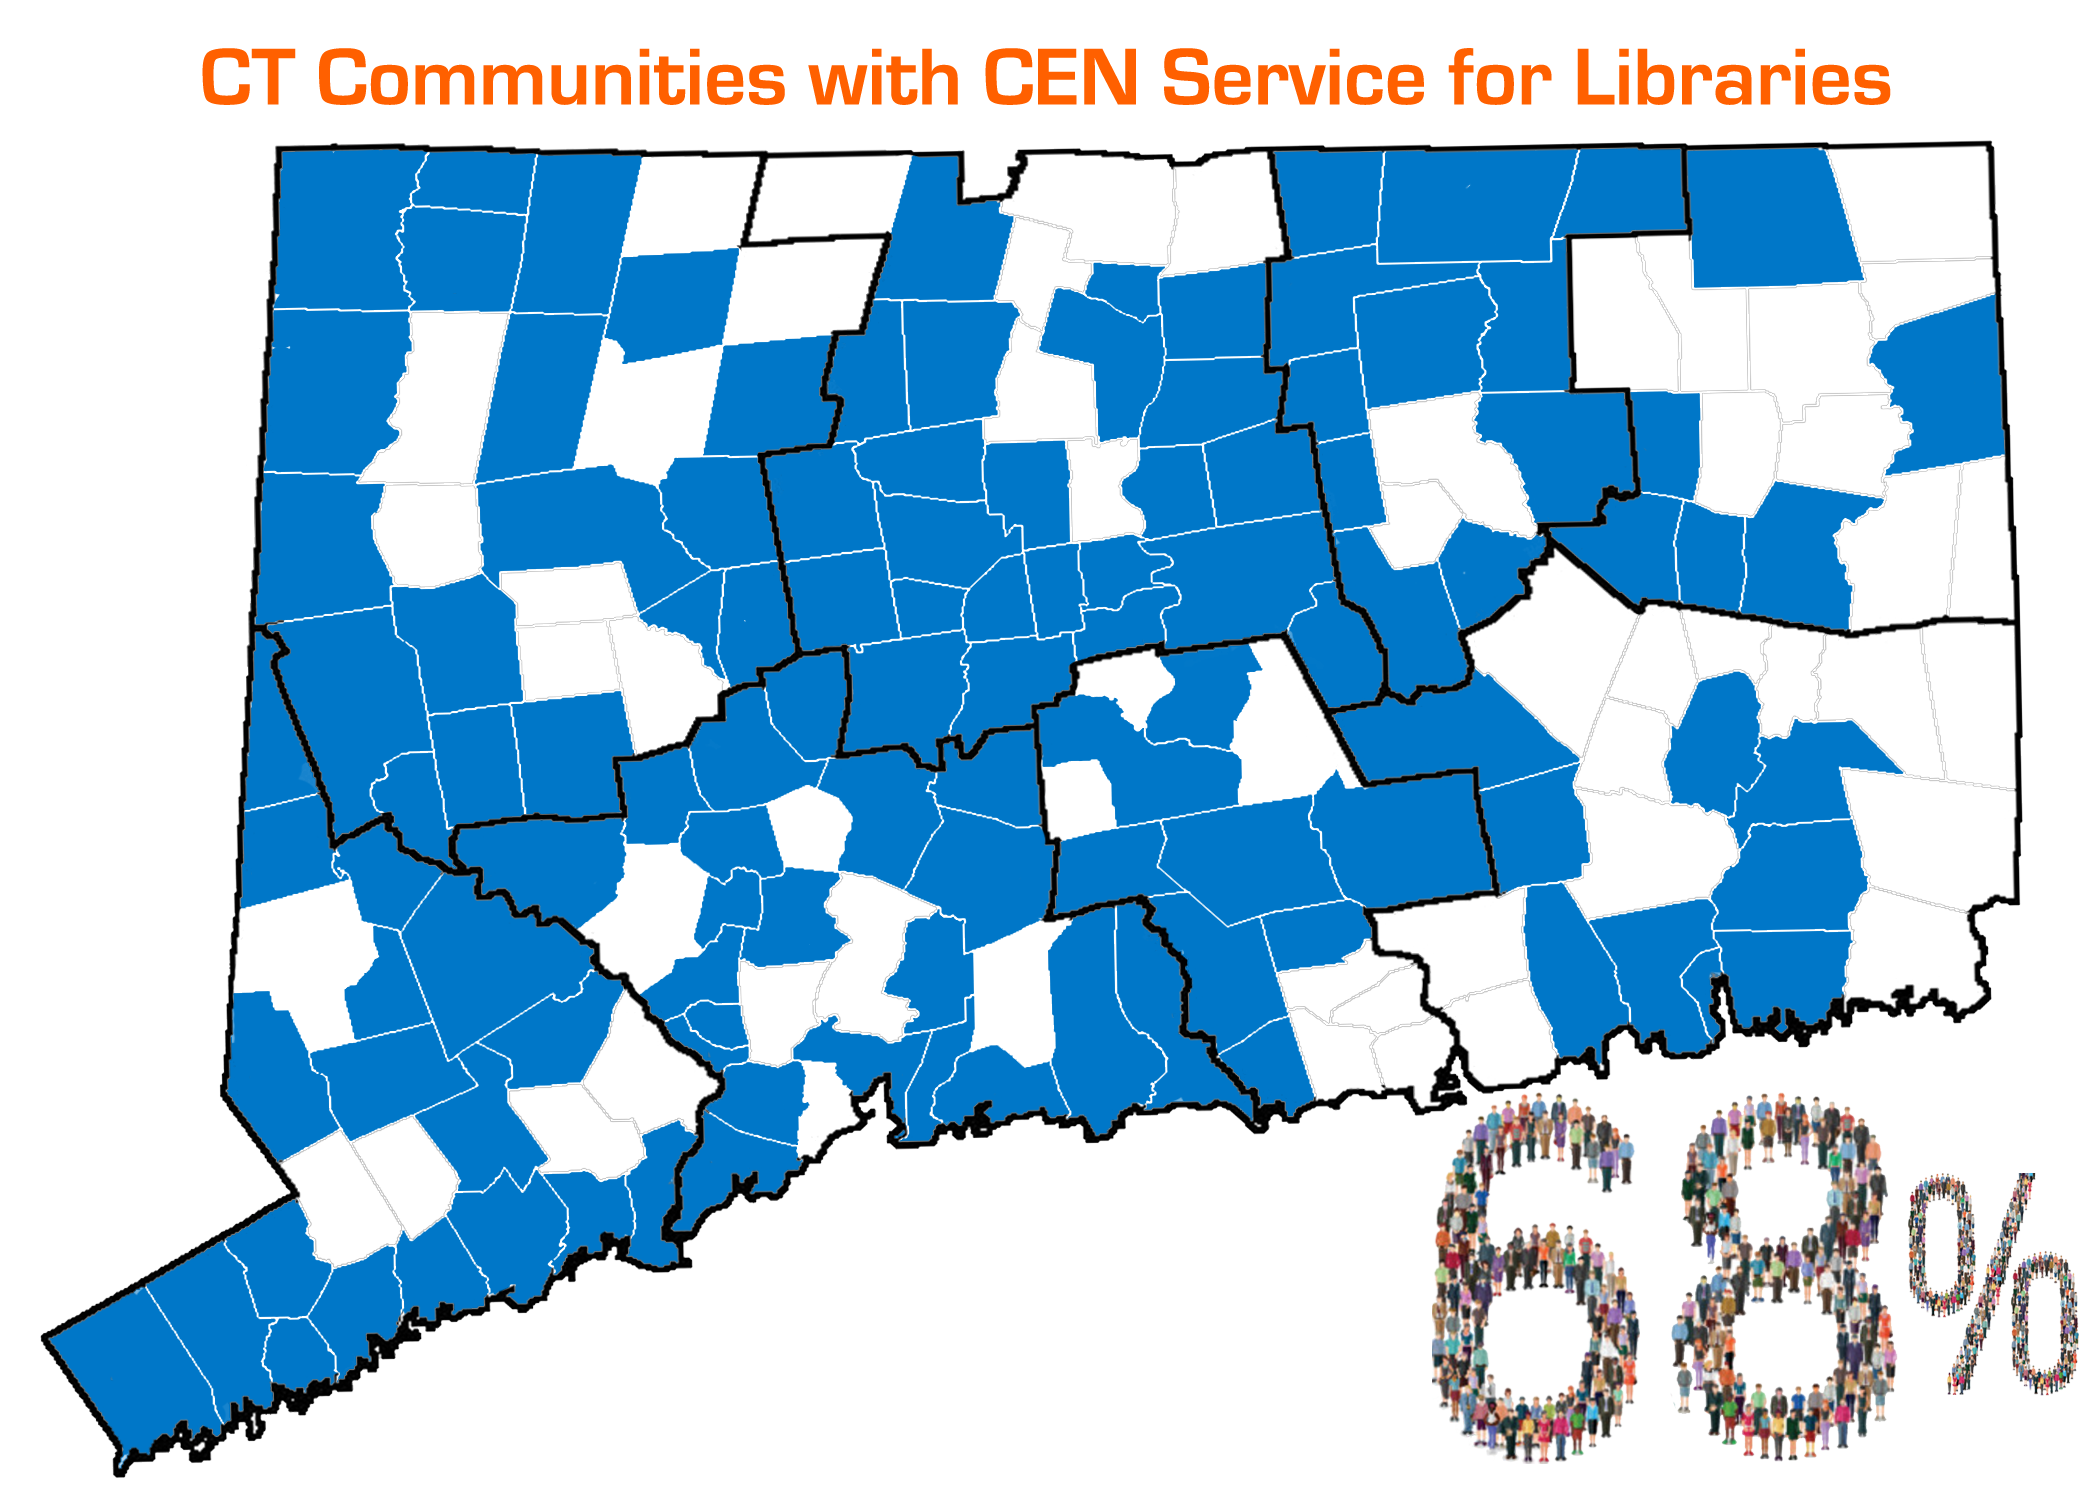 Map of CT partially shaded blue, above map reads: CT Communities with CEN Service for Libraries, below map reads: 68%